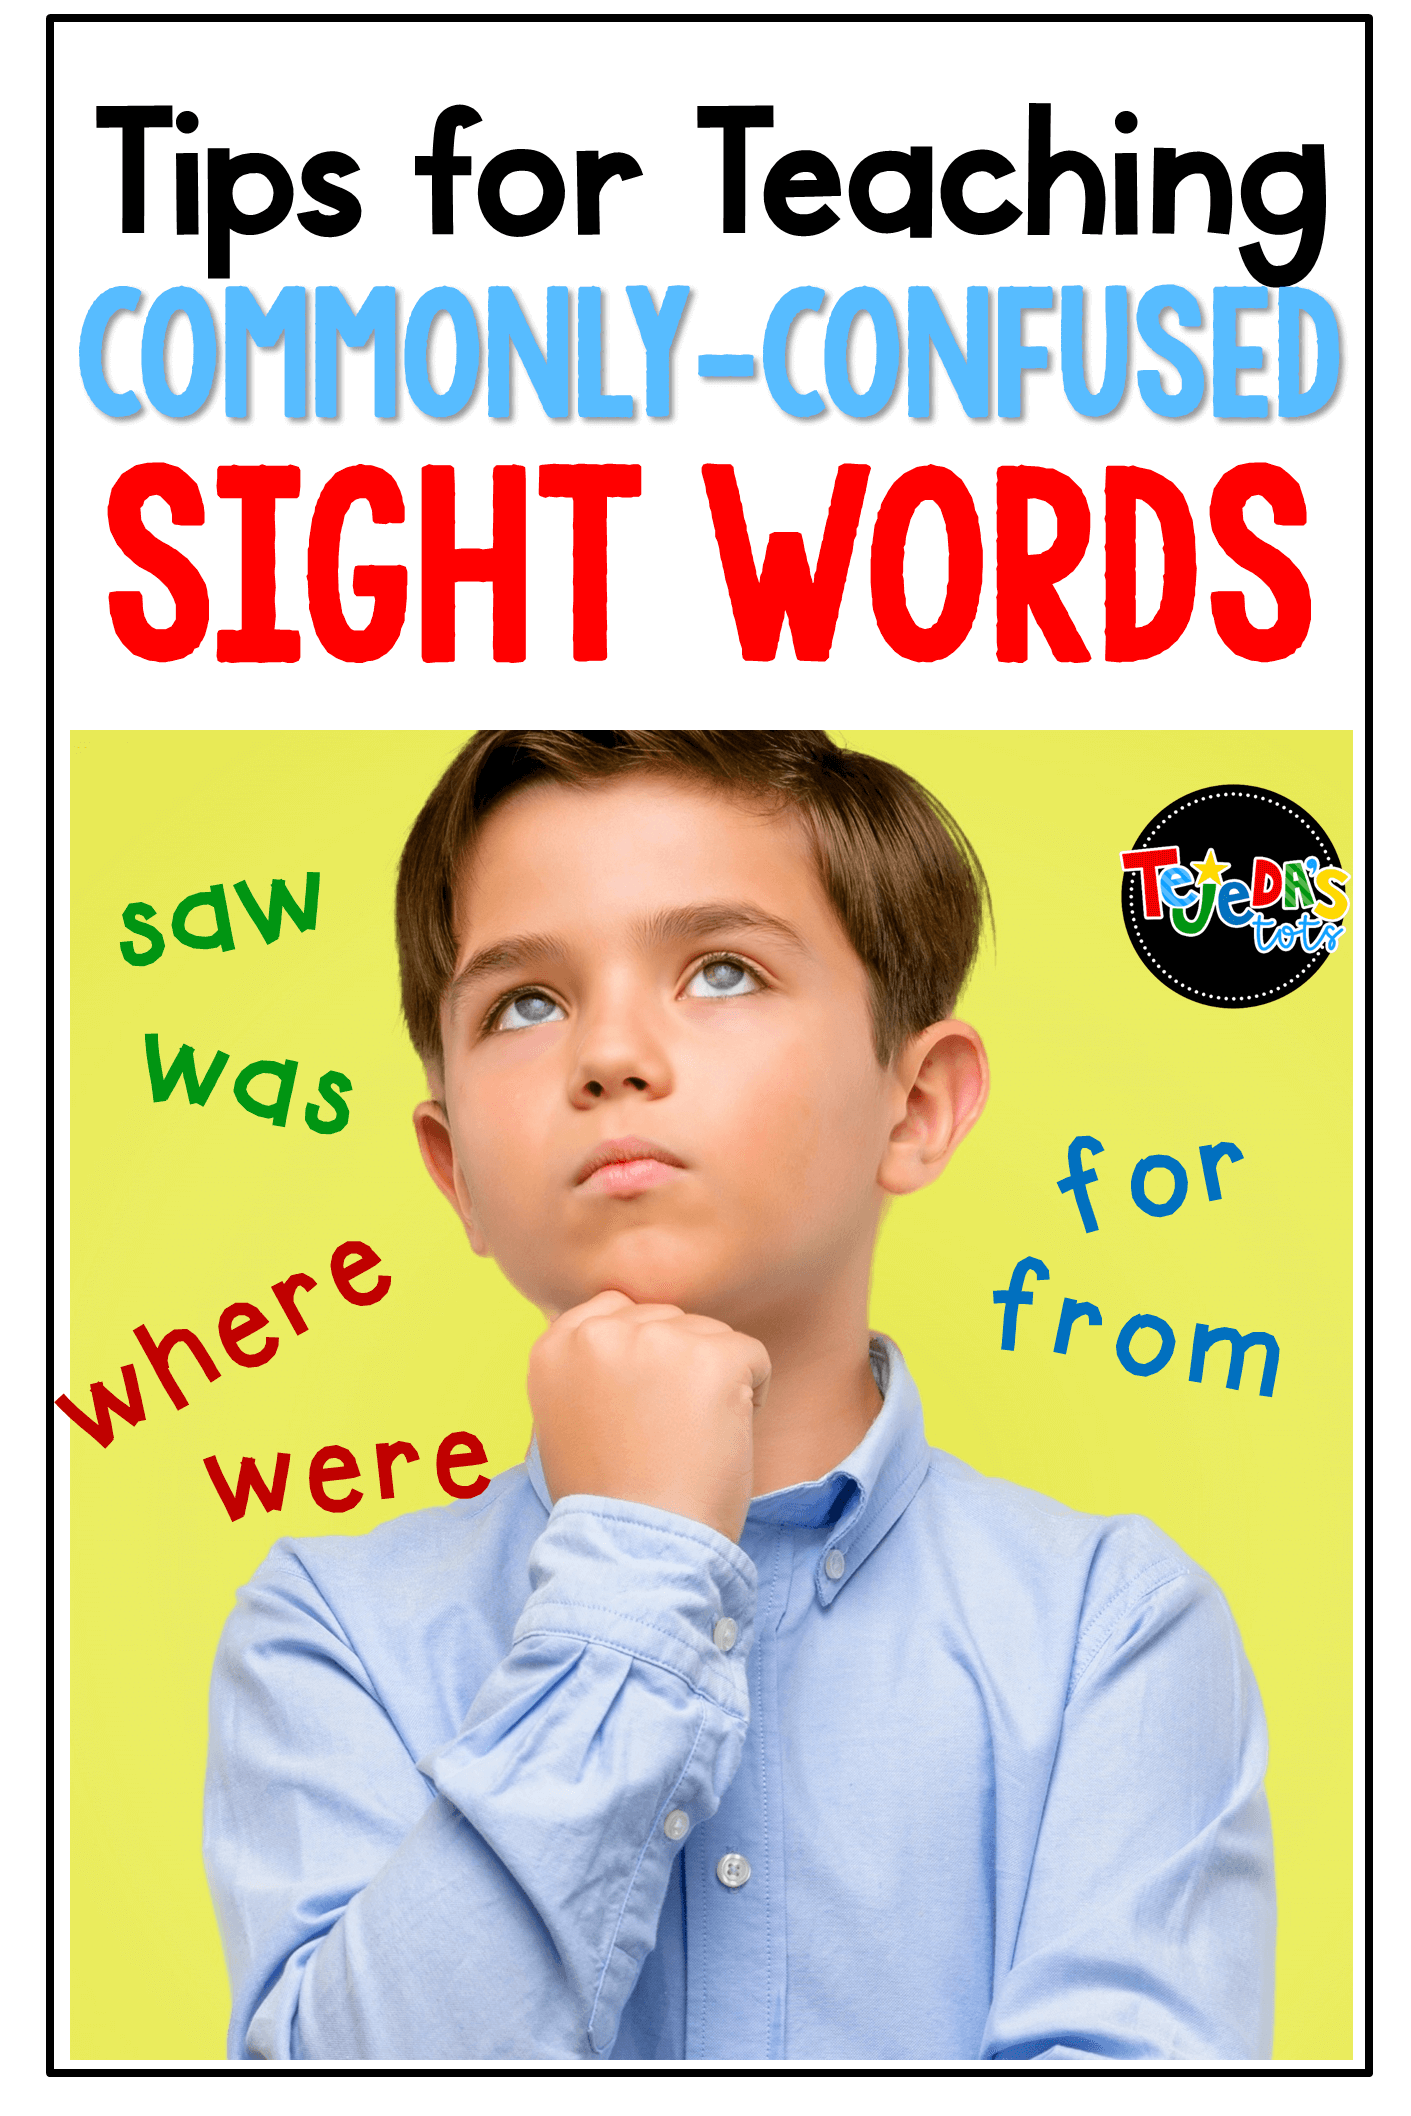 Tips for Commonly-Confused Sight Words